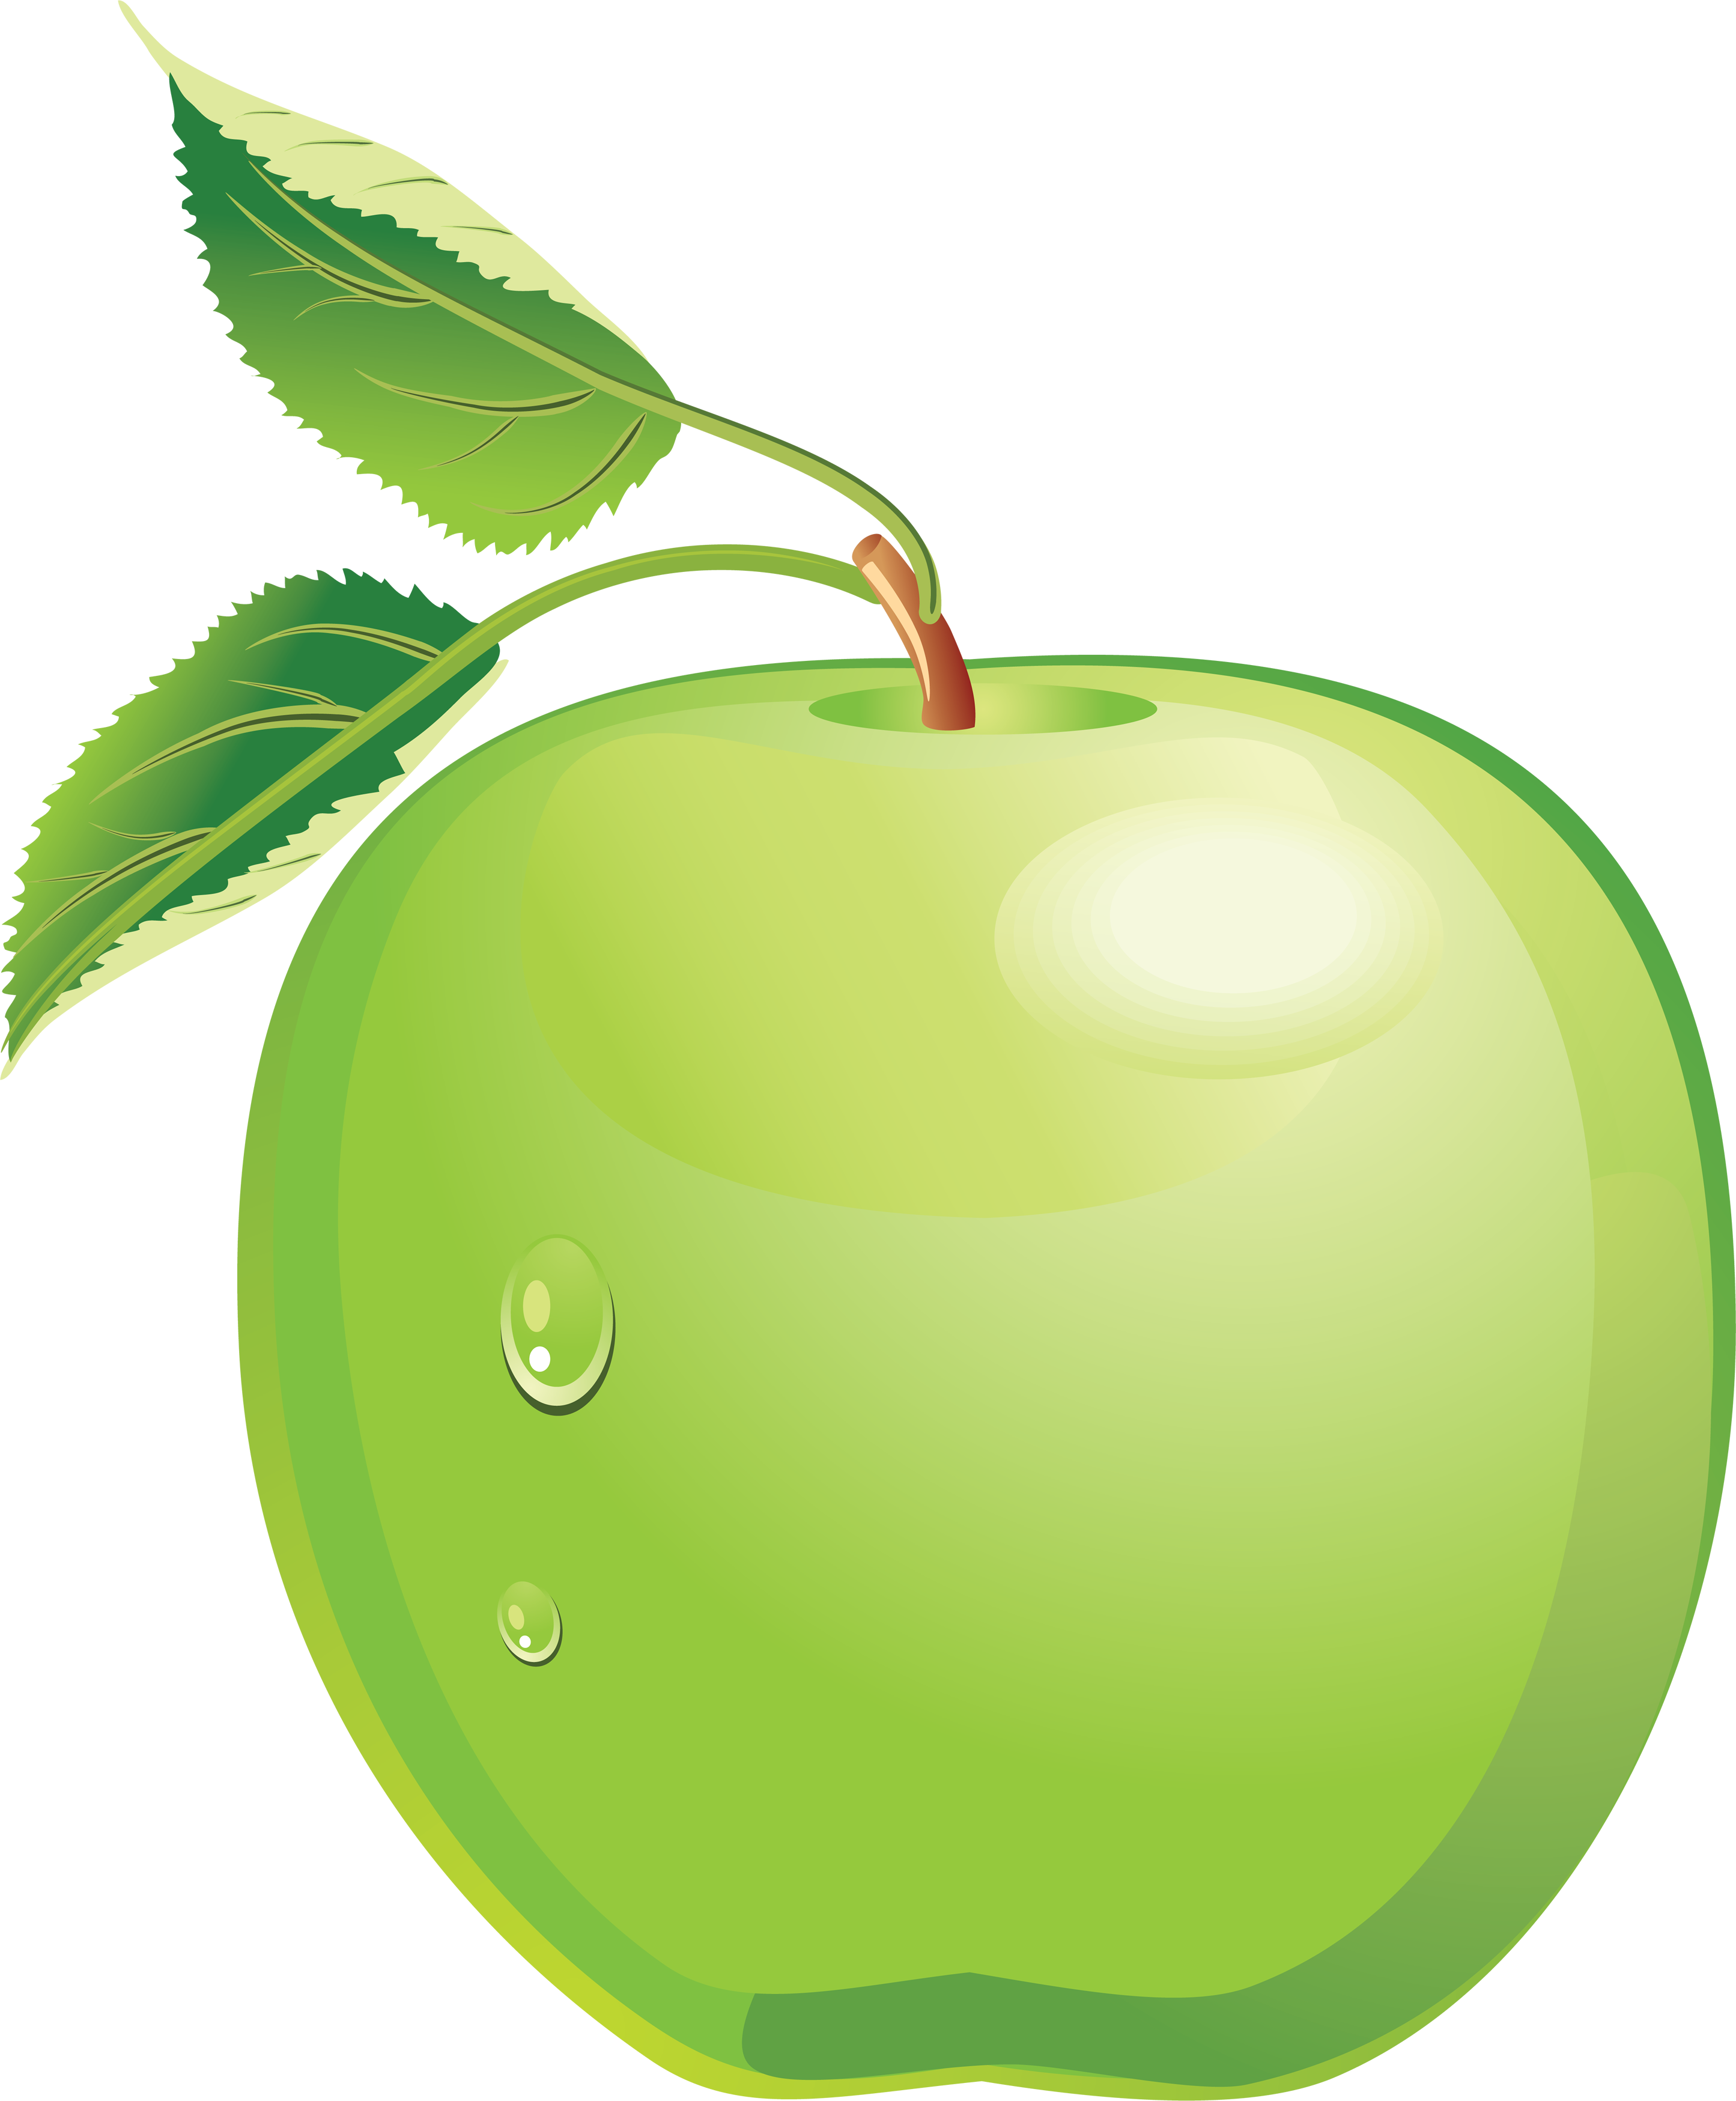 Apple one isolated stock. Watermelon clipart green object